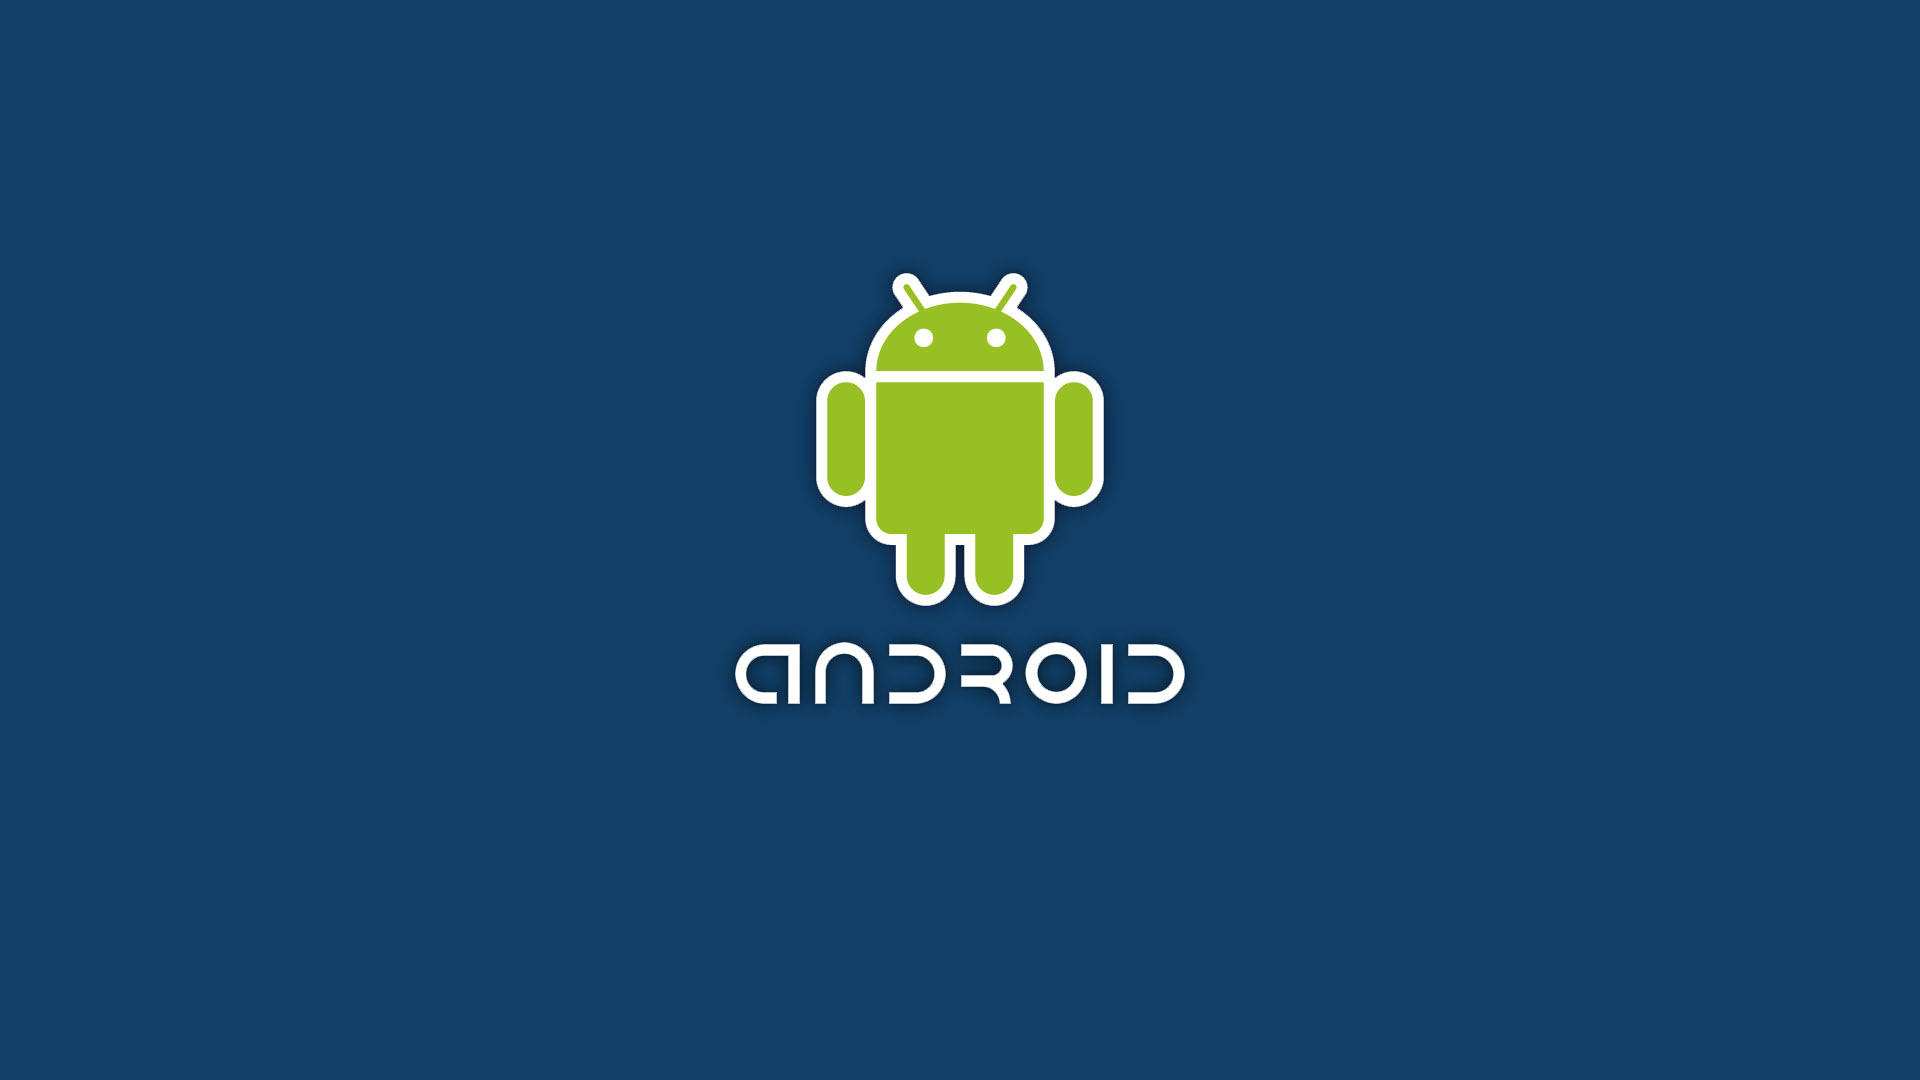 Android Mobile Logo Hd Wallpaper